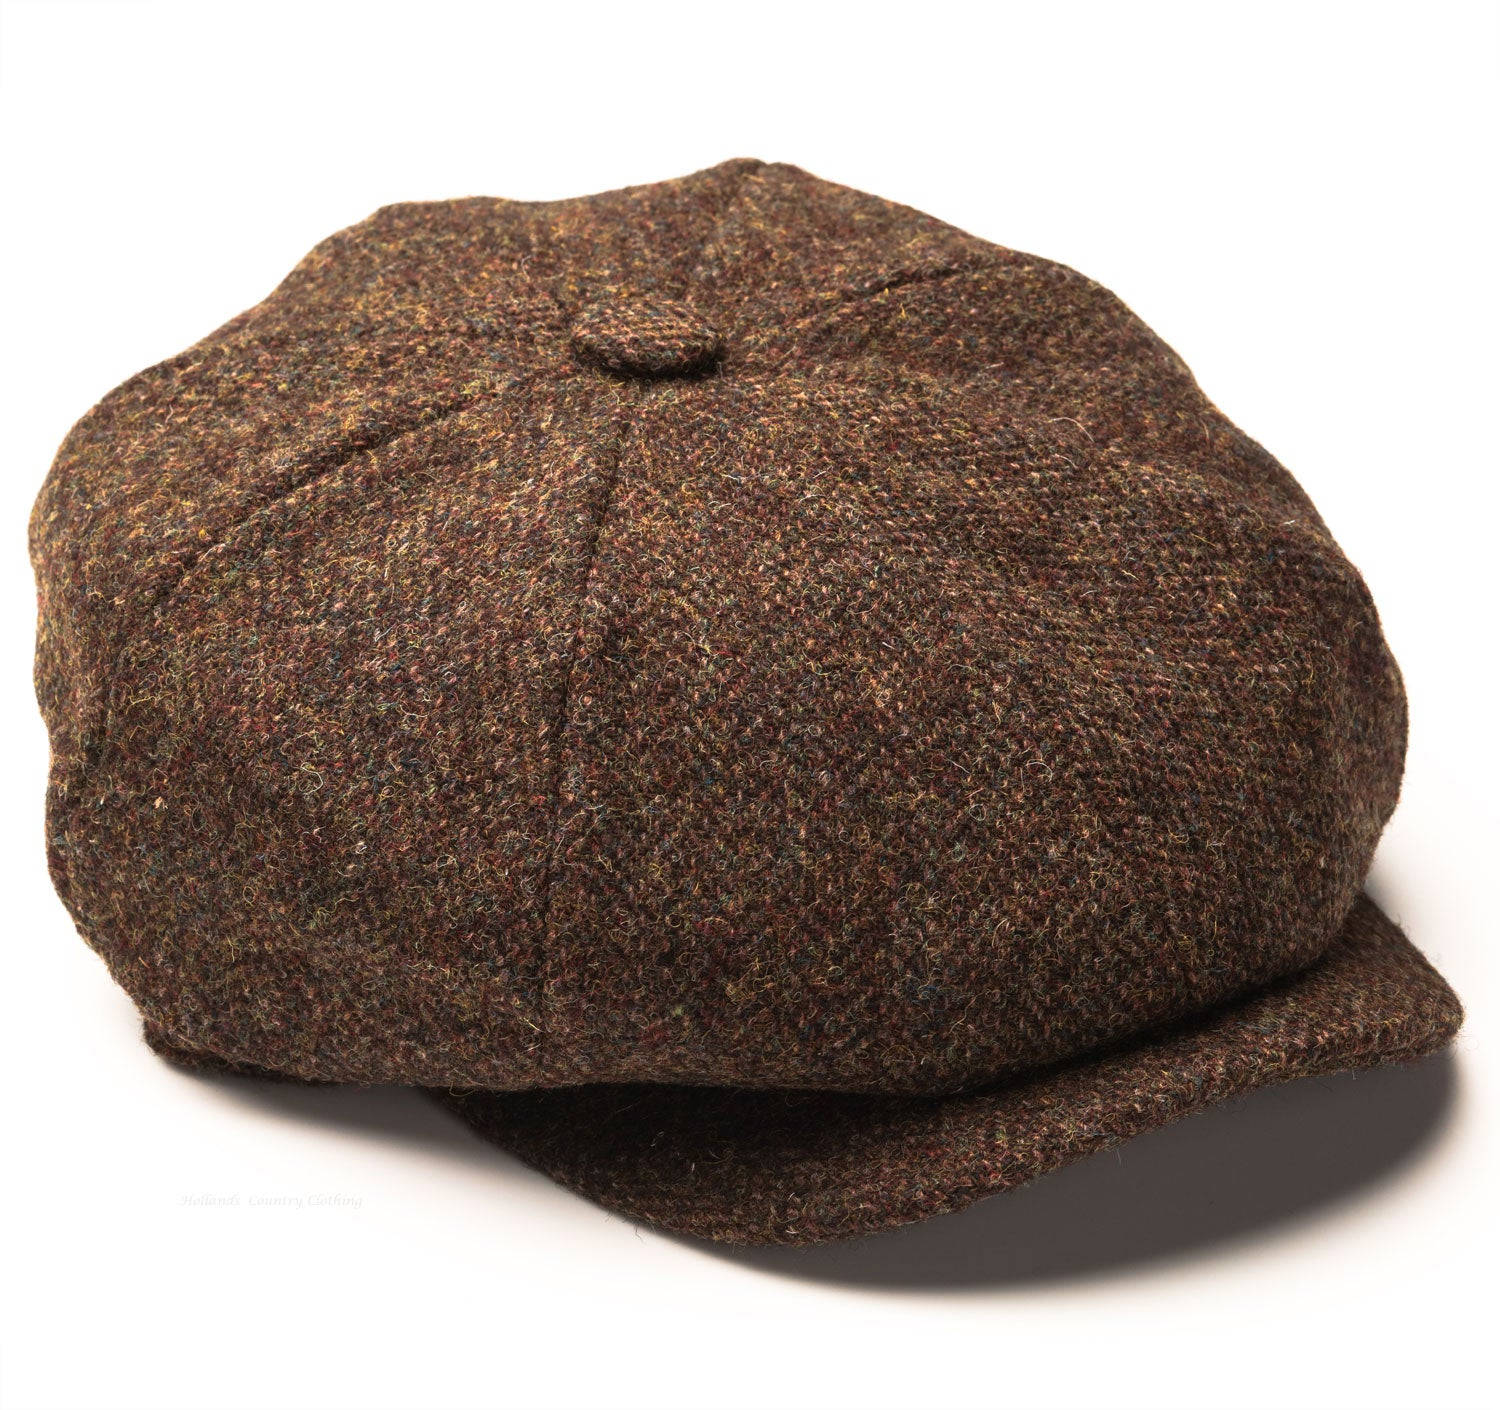 Baker's boy cap, Heather Scott Harris Tweed 8-Piece Cap | Olive/Brown Mix